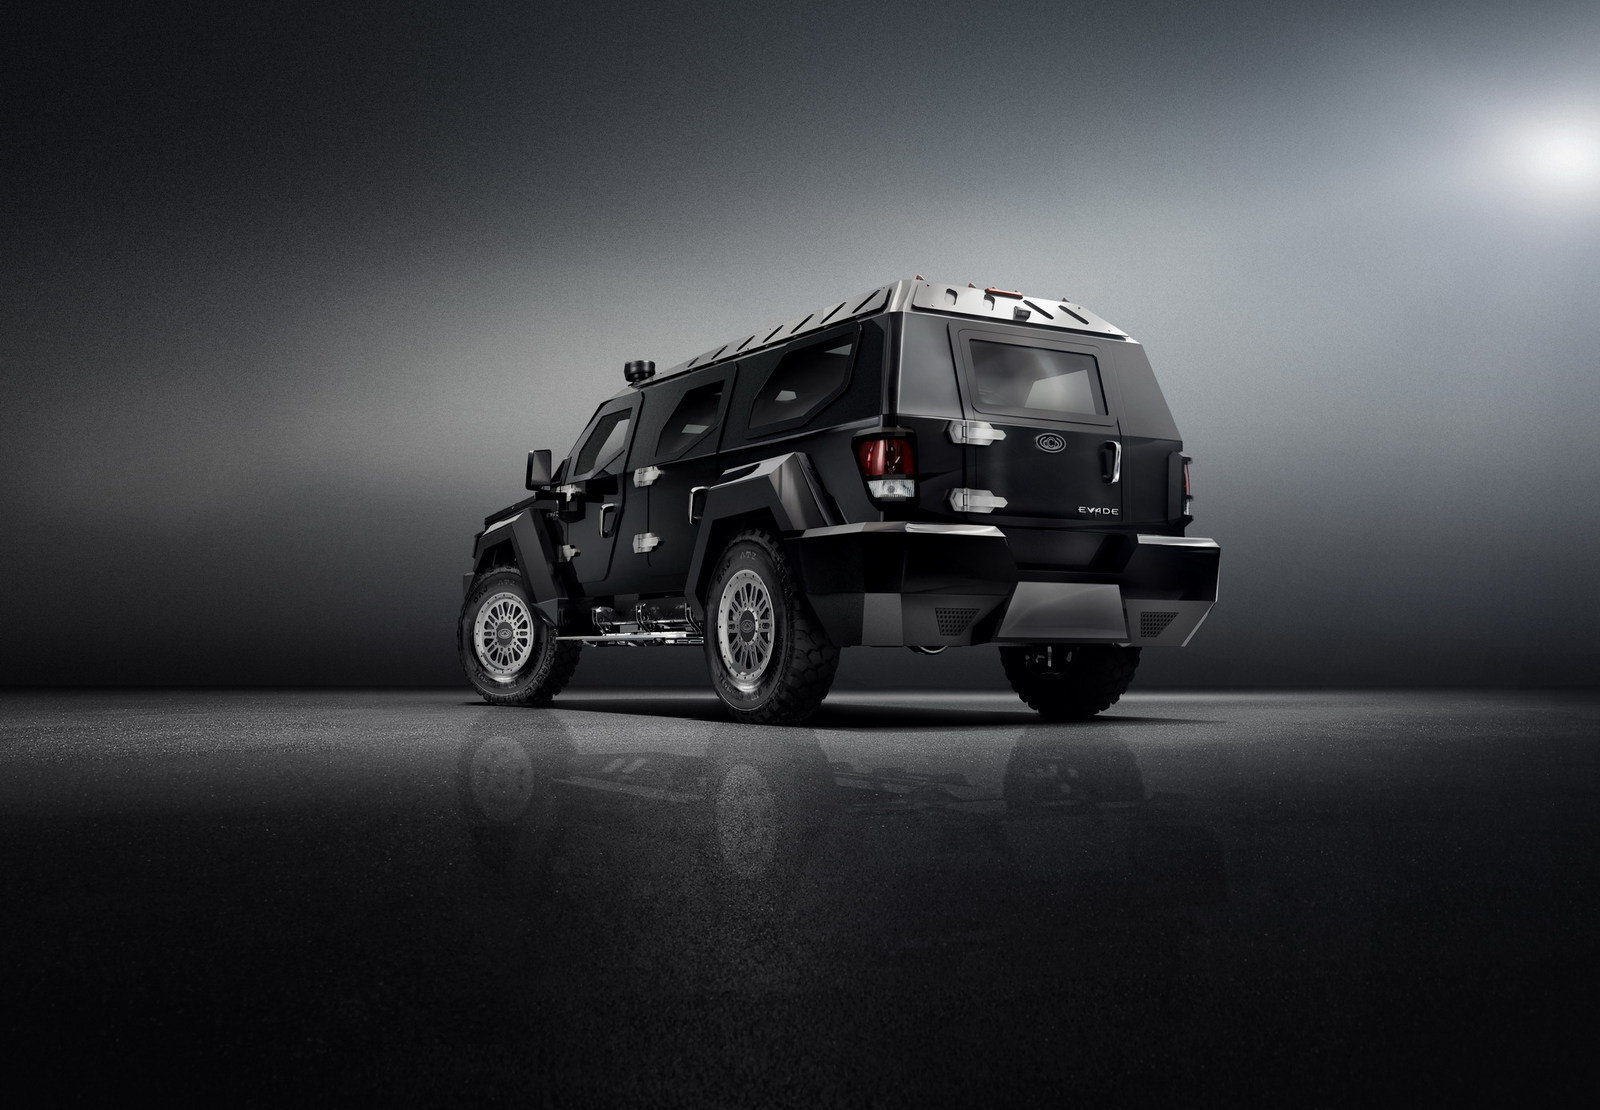 http://pictures.topspeed.com/IMG/crop/201208/conquest-evade-2_1600x0w.jpg